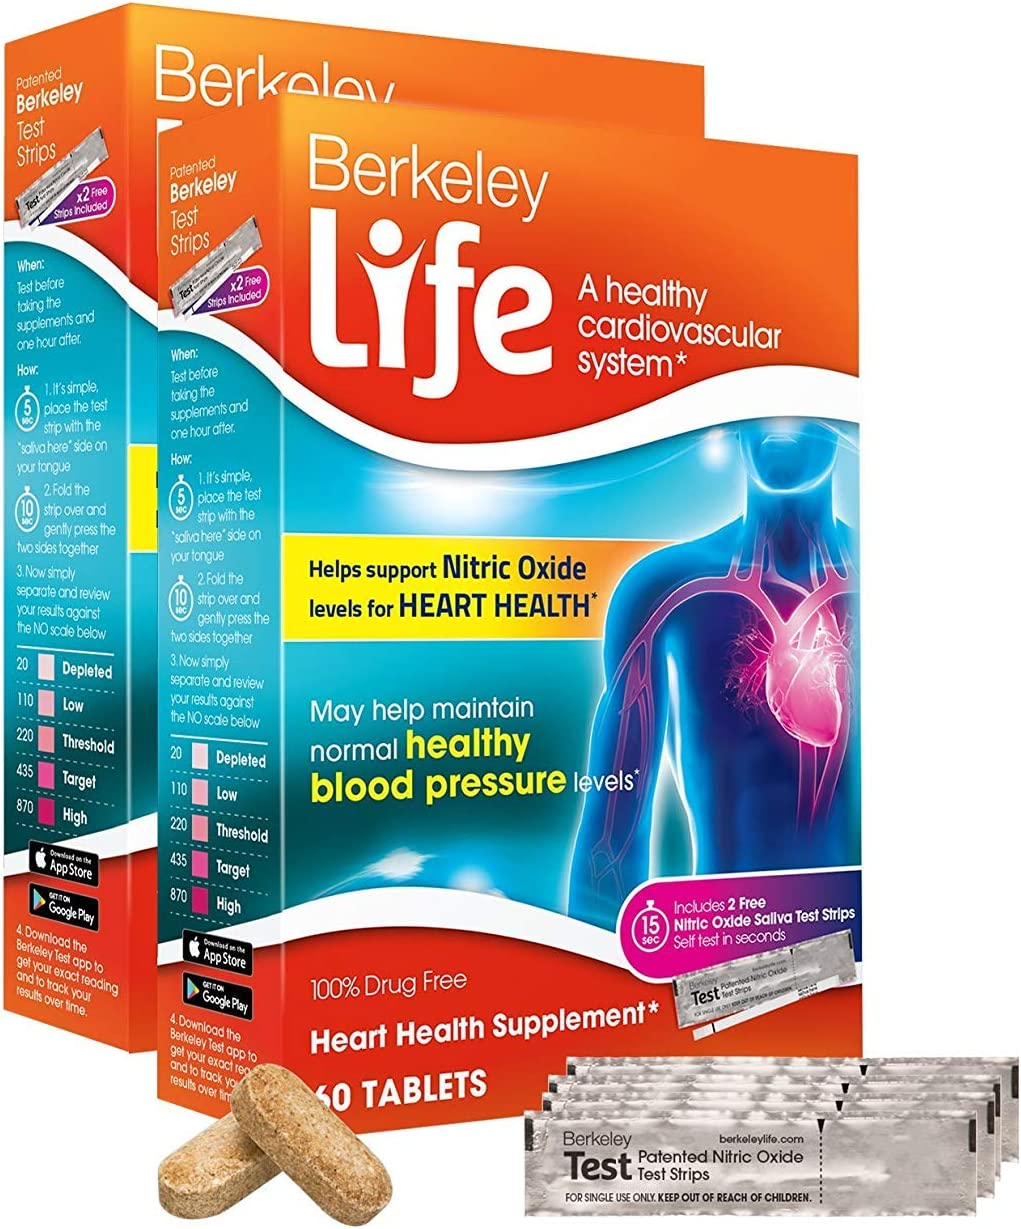 Berkeley Life Nitric Oxide Boost #1 Blood Pressure Support Supplement Pomegranate Extract & Beet Root Capsules for High Blood Pressure Support Healthy Blood Flow Heart Health Supplement - 120 Ct